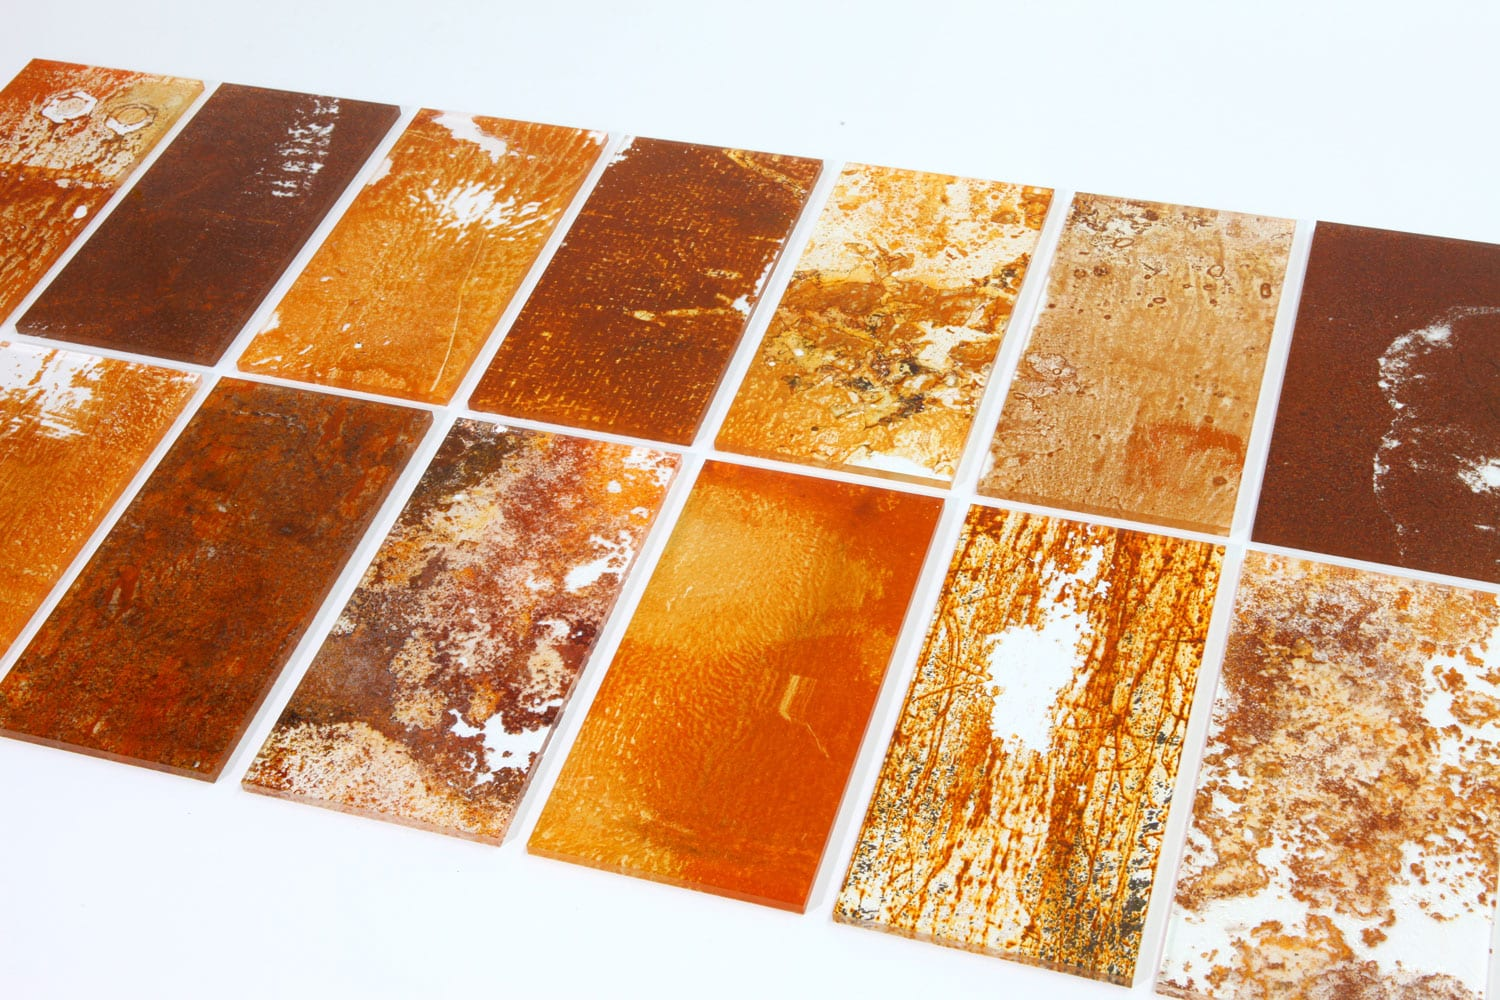 Rust Harvest: Experimental Materials Project by Yuma Kano | Yellowtrace